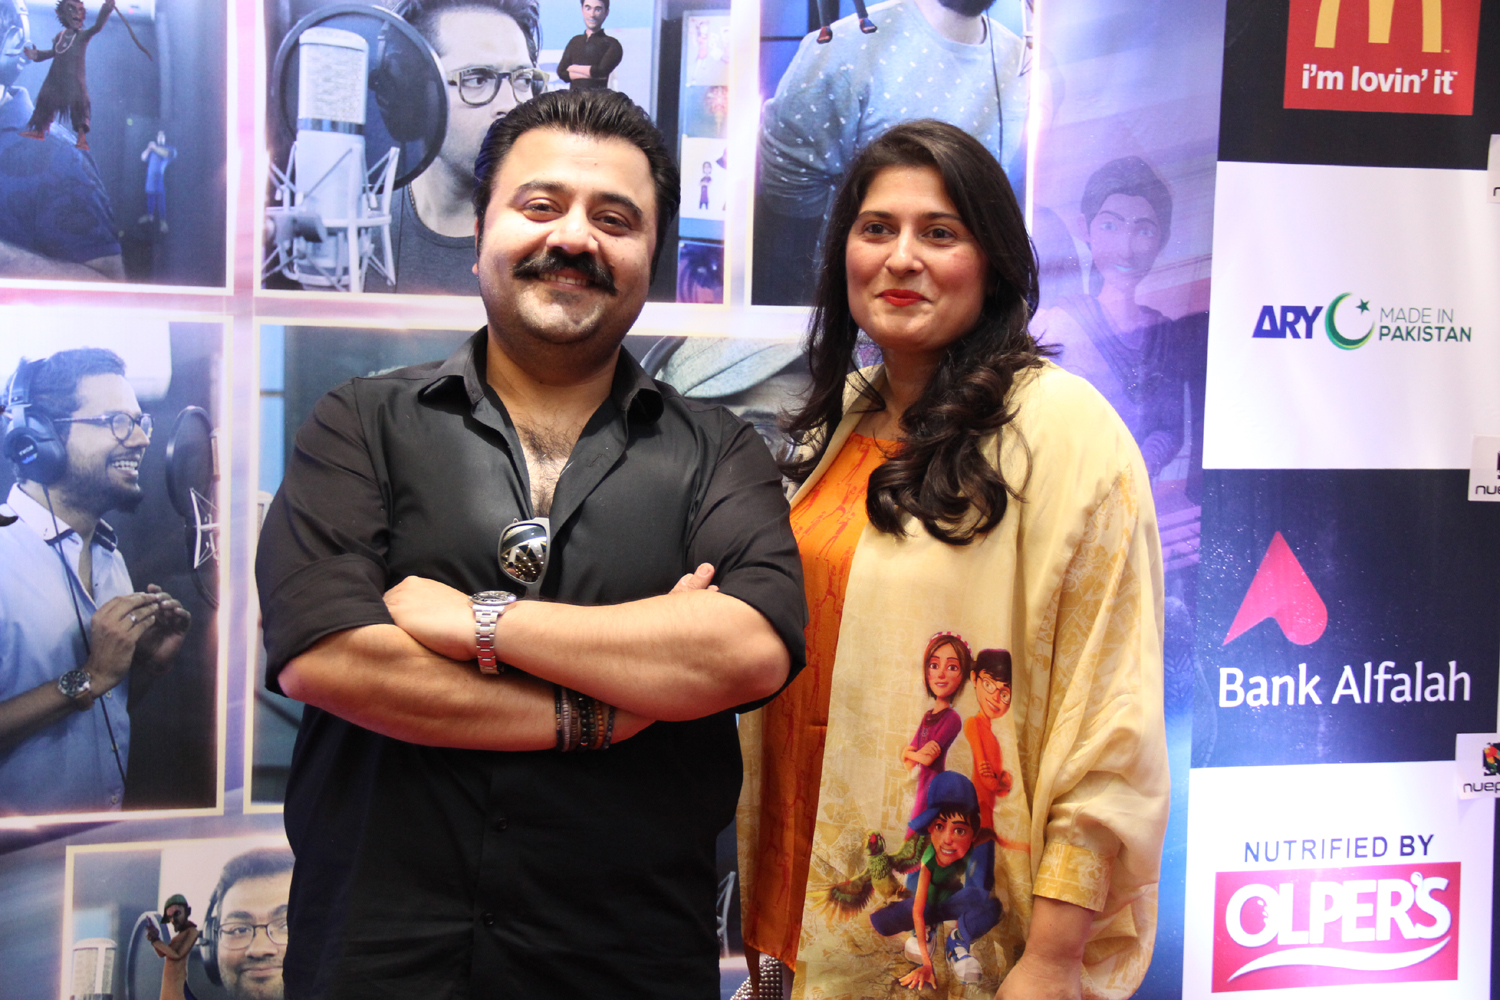 Ahmed Ali Butt and Sharmeen Obaid Chinoy